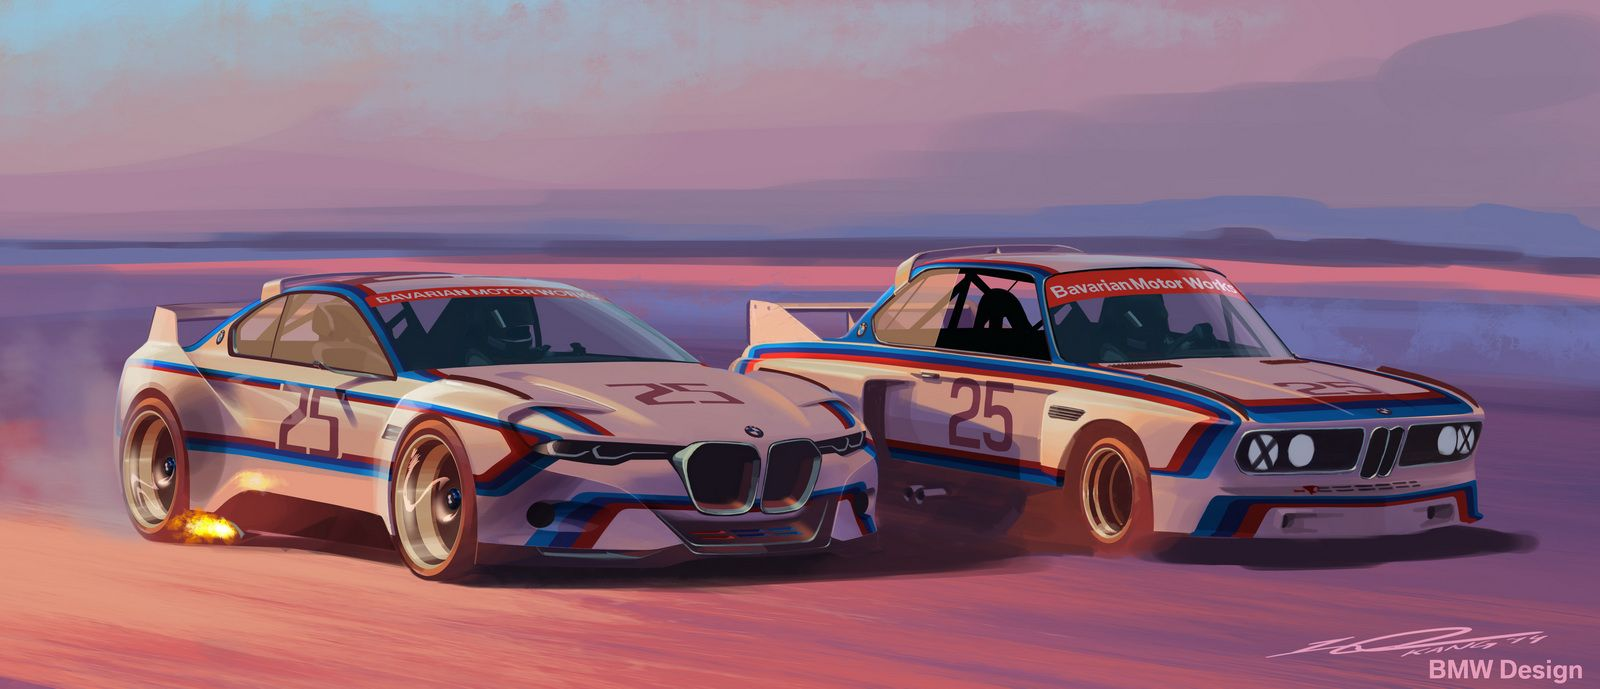 Bmw 3 0 Csl Hommage R Concept Proudly Wears Bmw Motorsport S